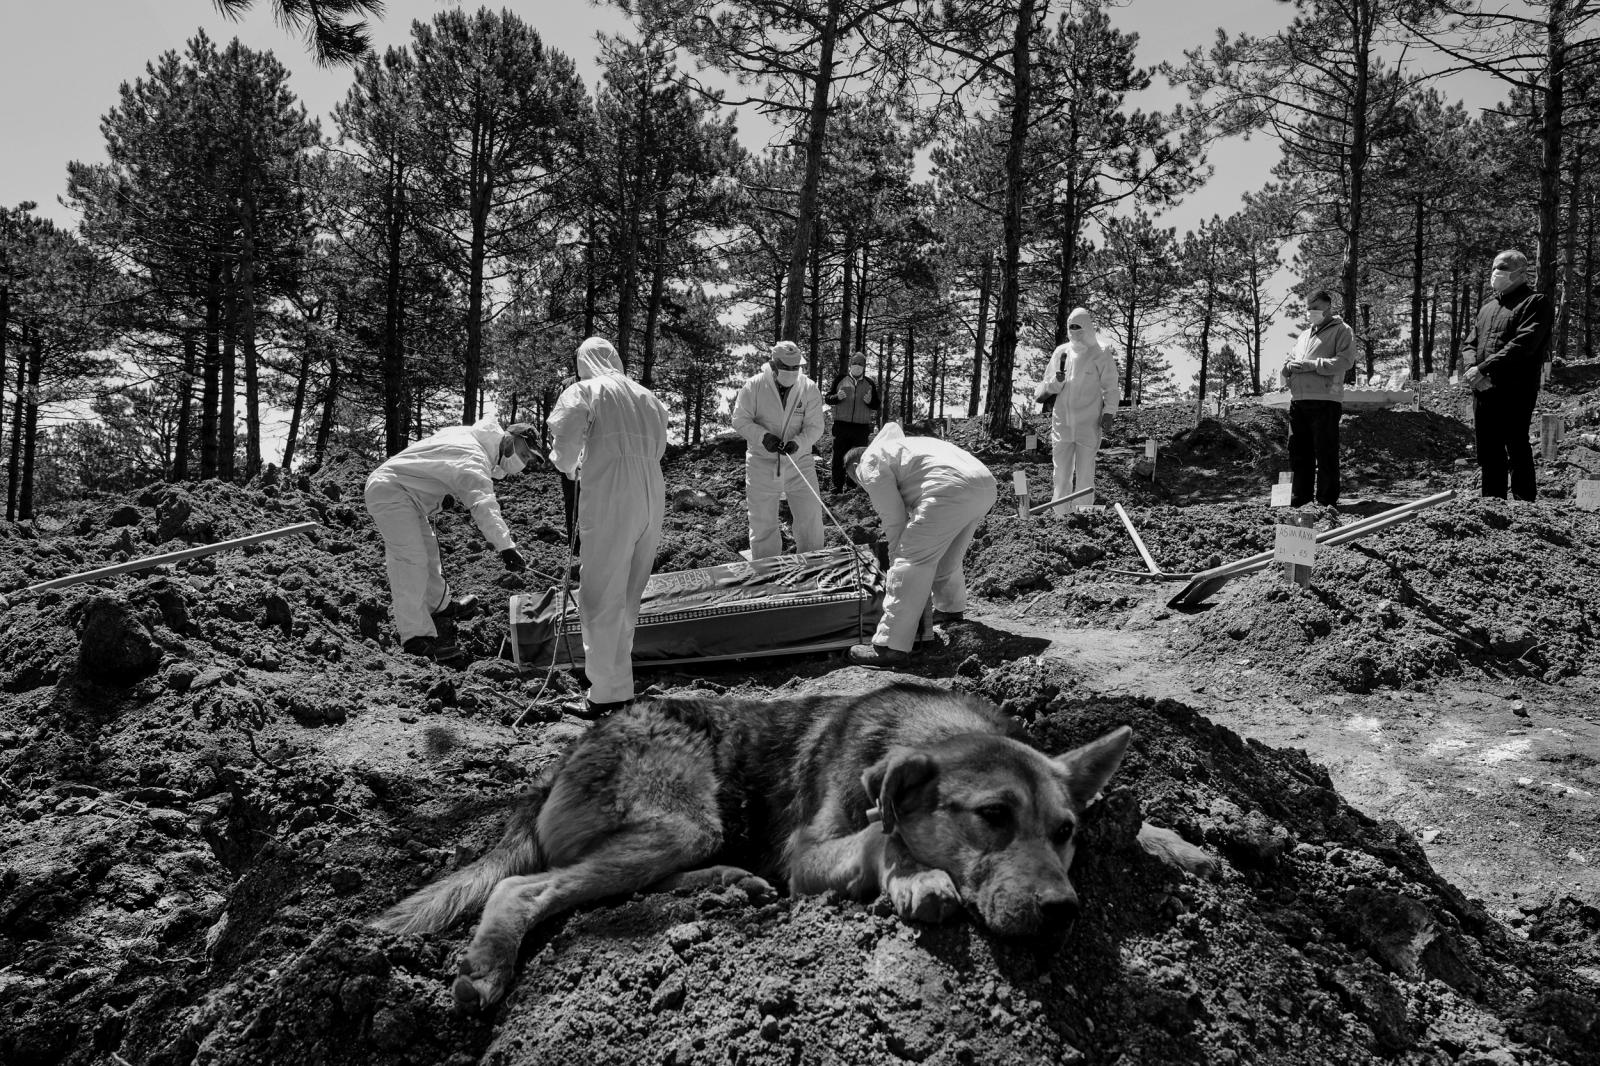 ISTANBUL, TURKEY, MAY 24-Citizens who lost their lives due to the coronavirus buried in a specified area in the Yukarā± Baklacā± Cemetery, which was prepared later on the Anatolian side of Istanbul. Because of the epidemic, no one is allowed to attend the funeral, except for first-degree relatives of the death. The cemetery officials dressed in special clothes bury the body with a coffin. Strait dogs accompany these silent funeral ceremonies.